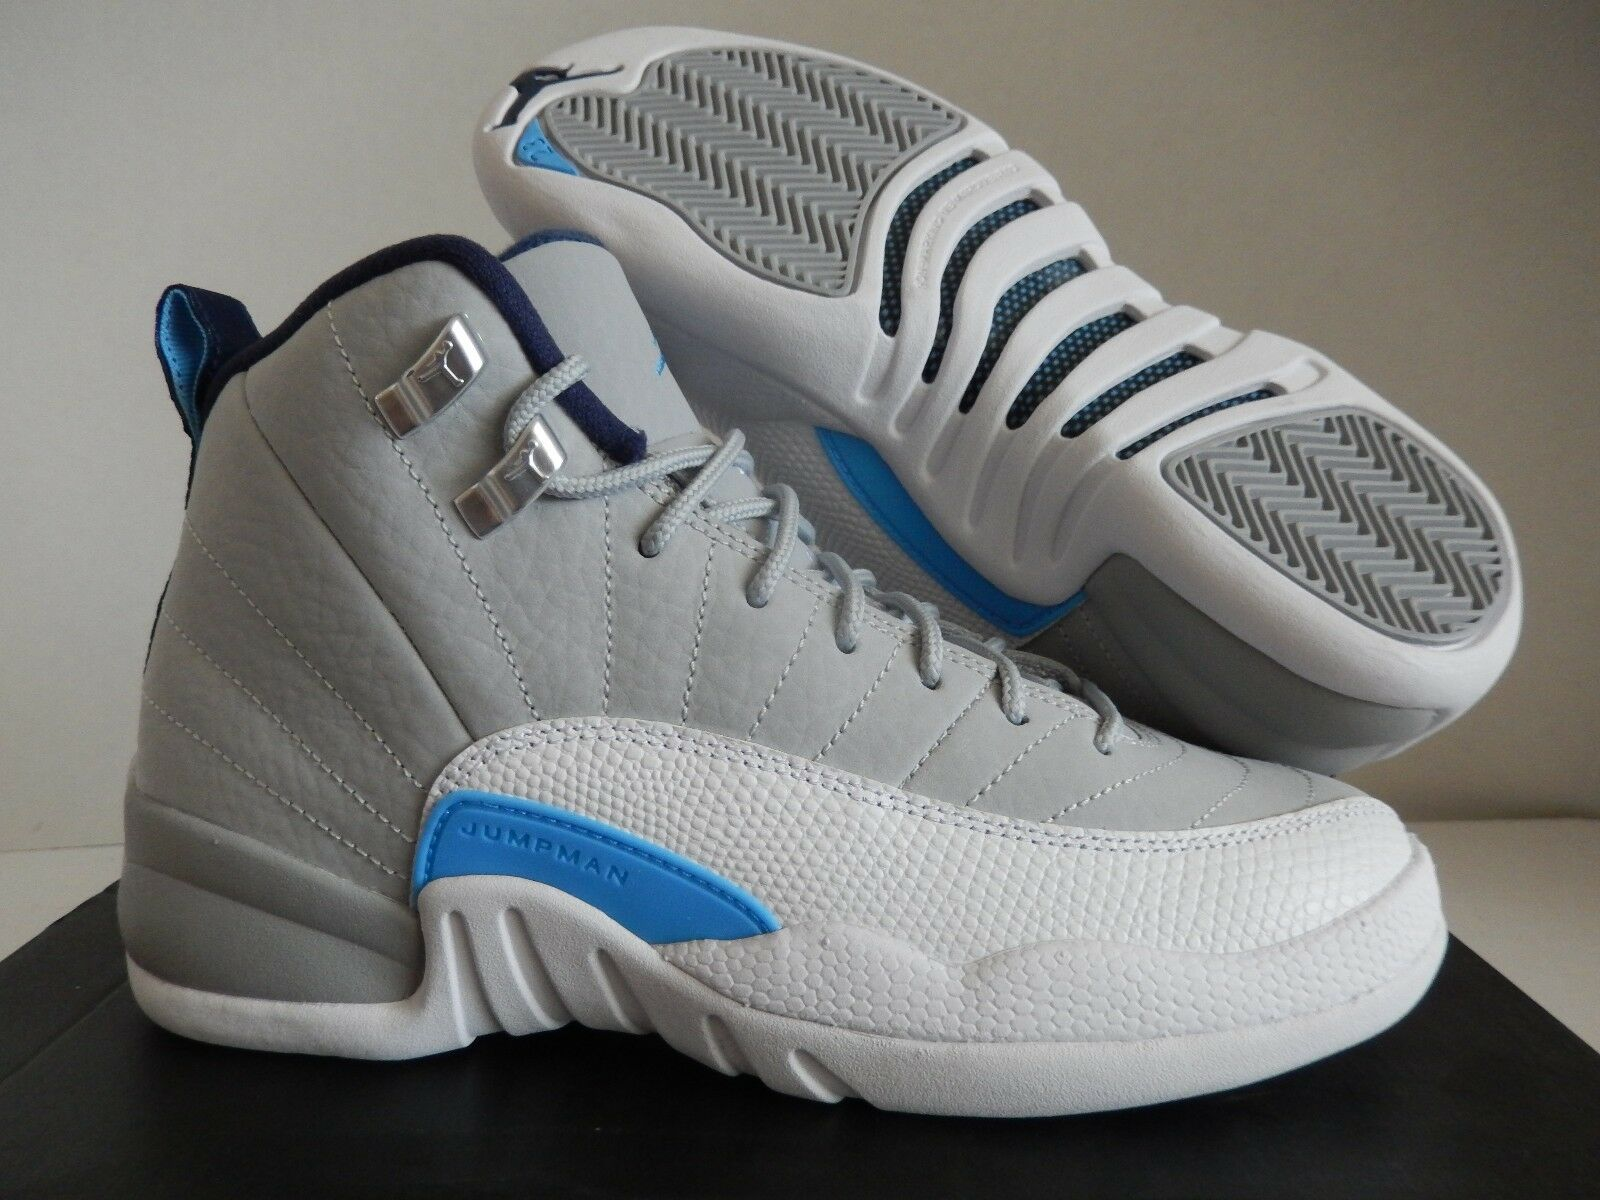 NIKE AIR JORDAN 12 RETRO BG WOLF GREY-blueE UNC SZ 4Y -WOMENS SZ 5.5 [153265-007]